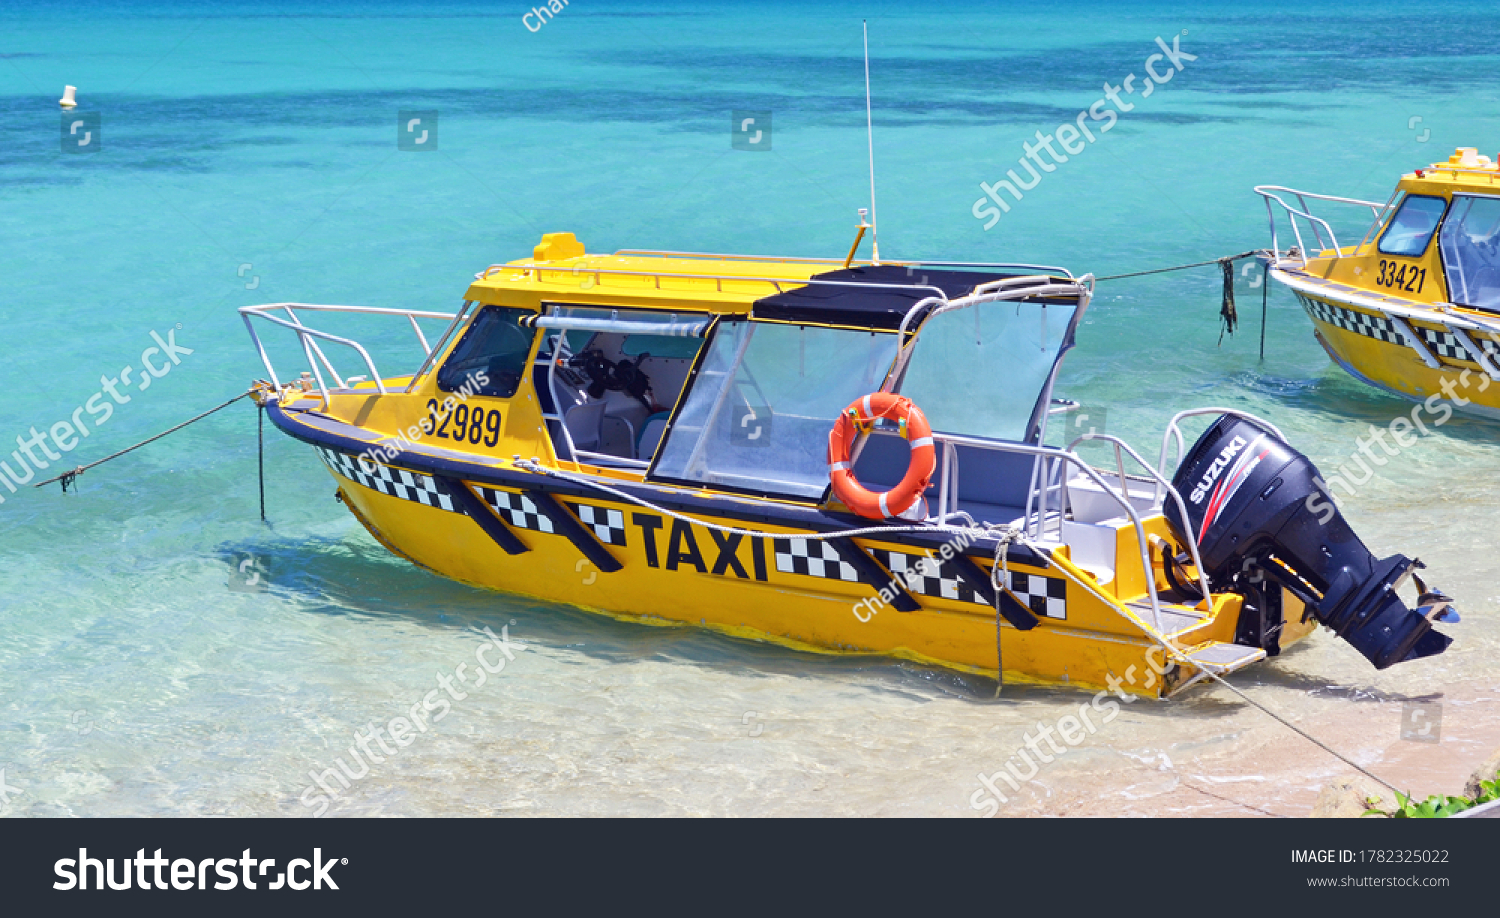 Noumea, New Caledonia/France - February 13 2012: water taxis await their customers at the beach in Noumea.